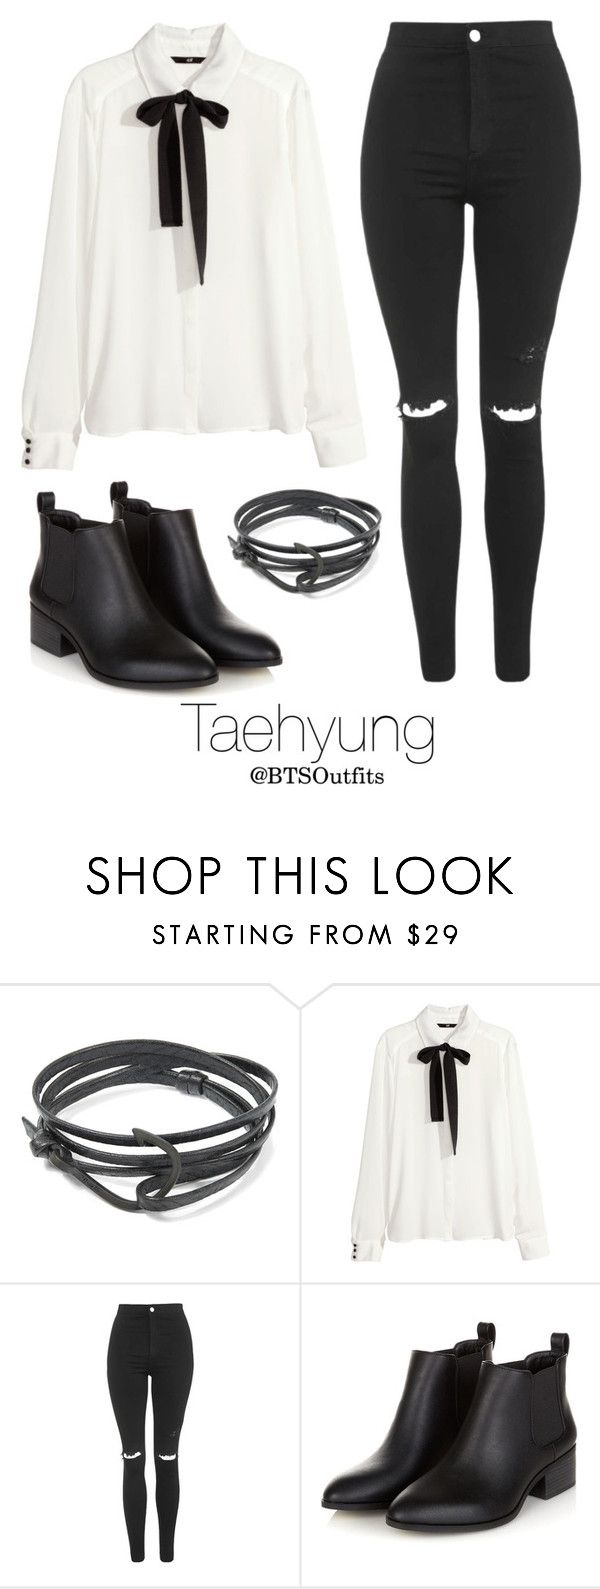 """""""Young Forever Inspired: Taehyung"""" by btsoutfits ❤ liked on Polyvore featuring MIANSAI, H&M and Topshop"""